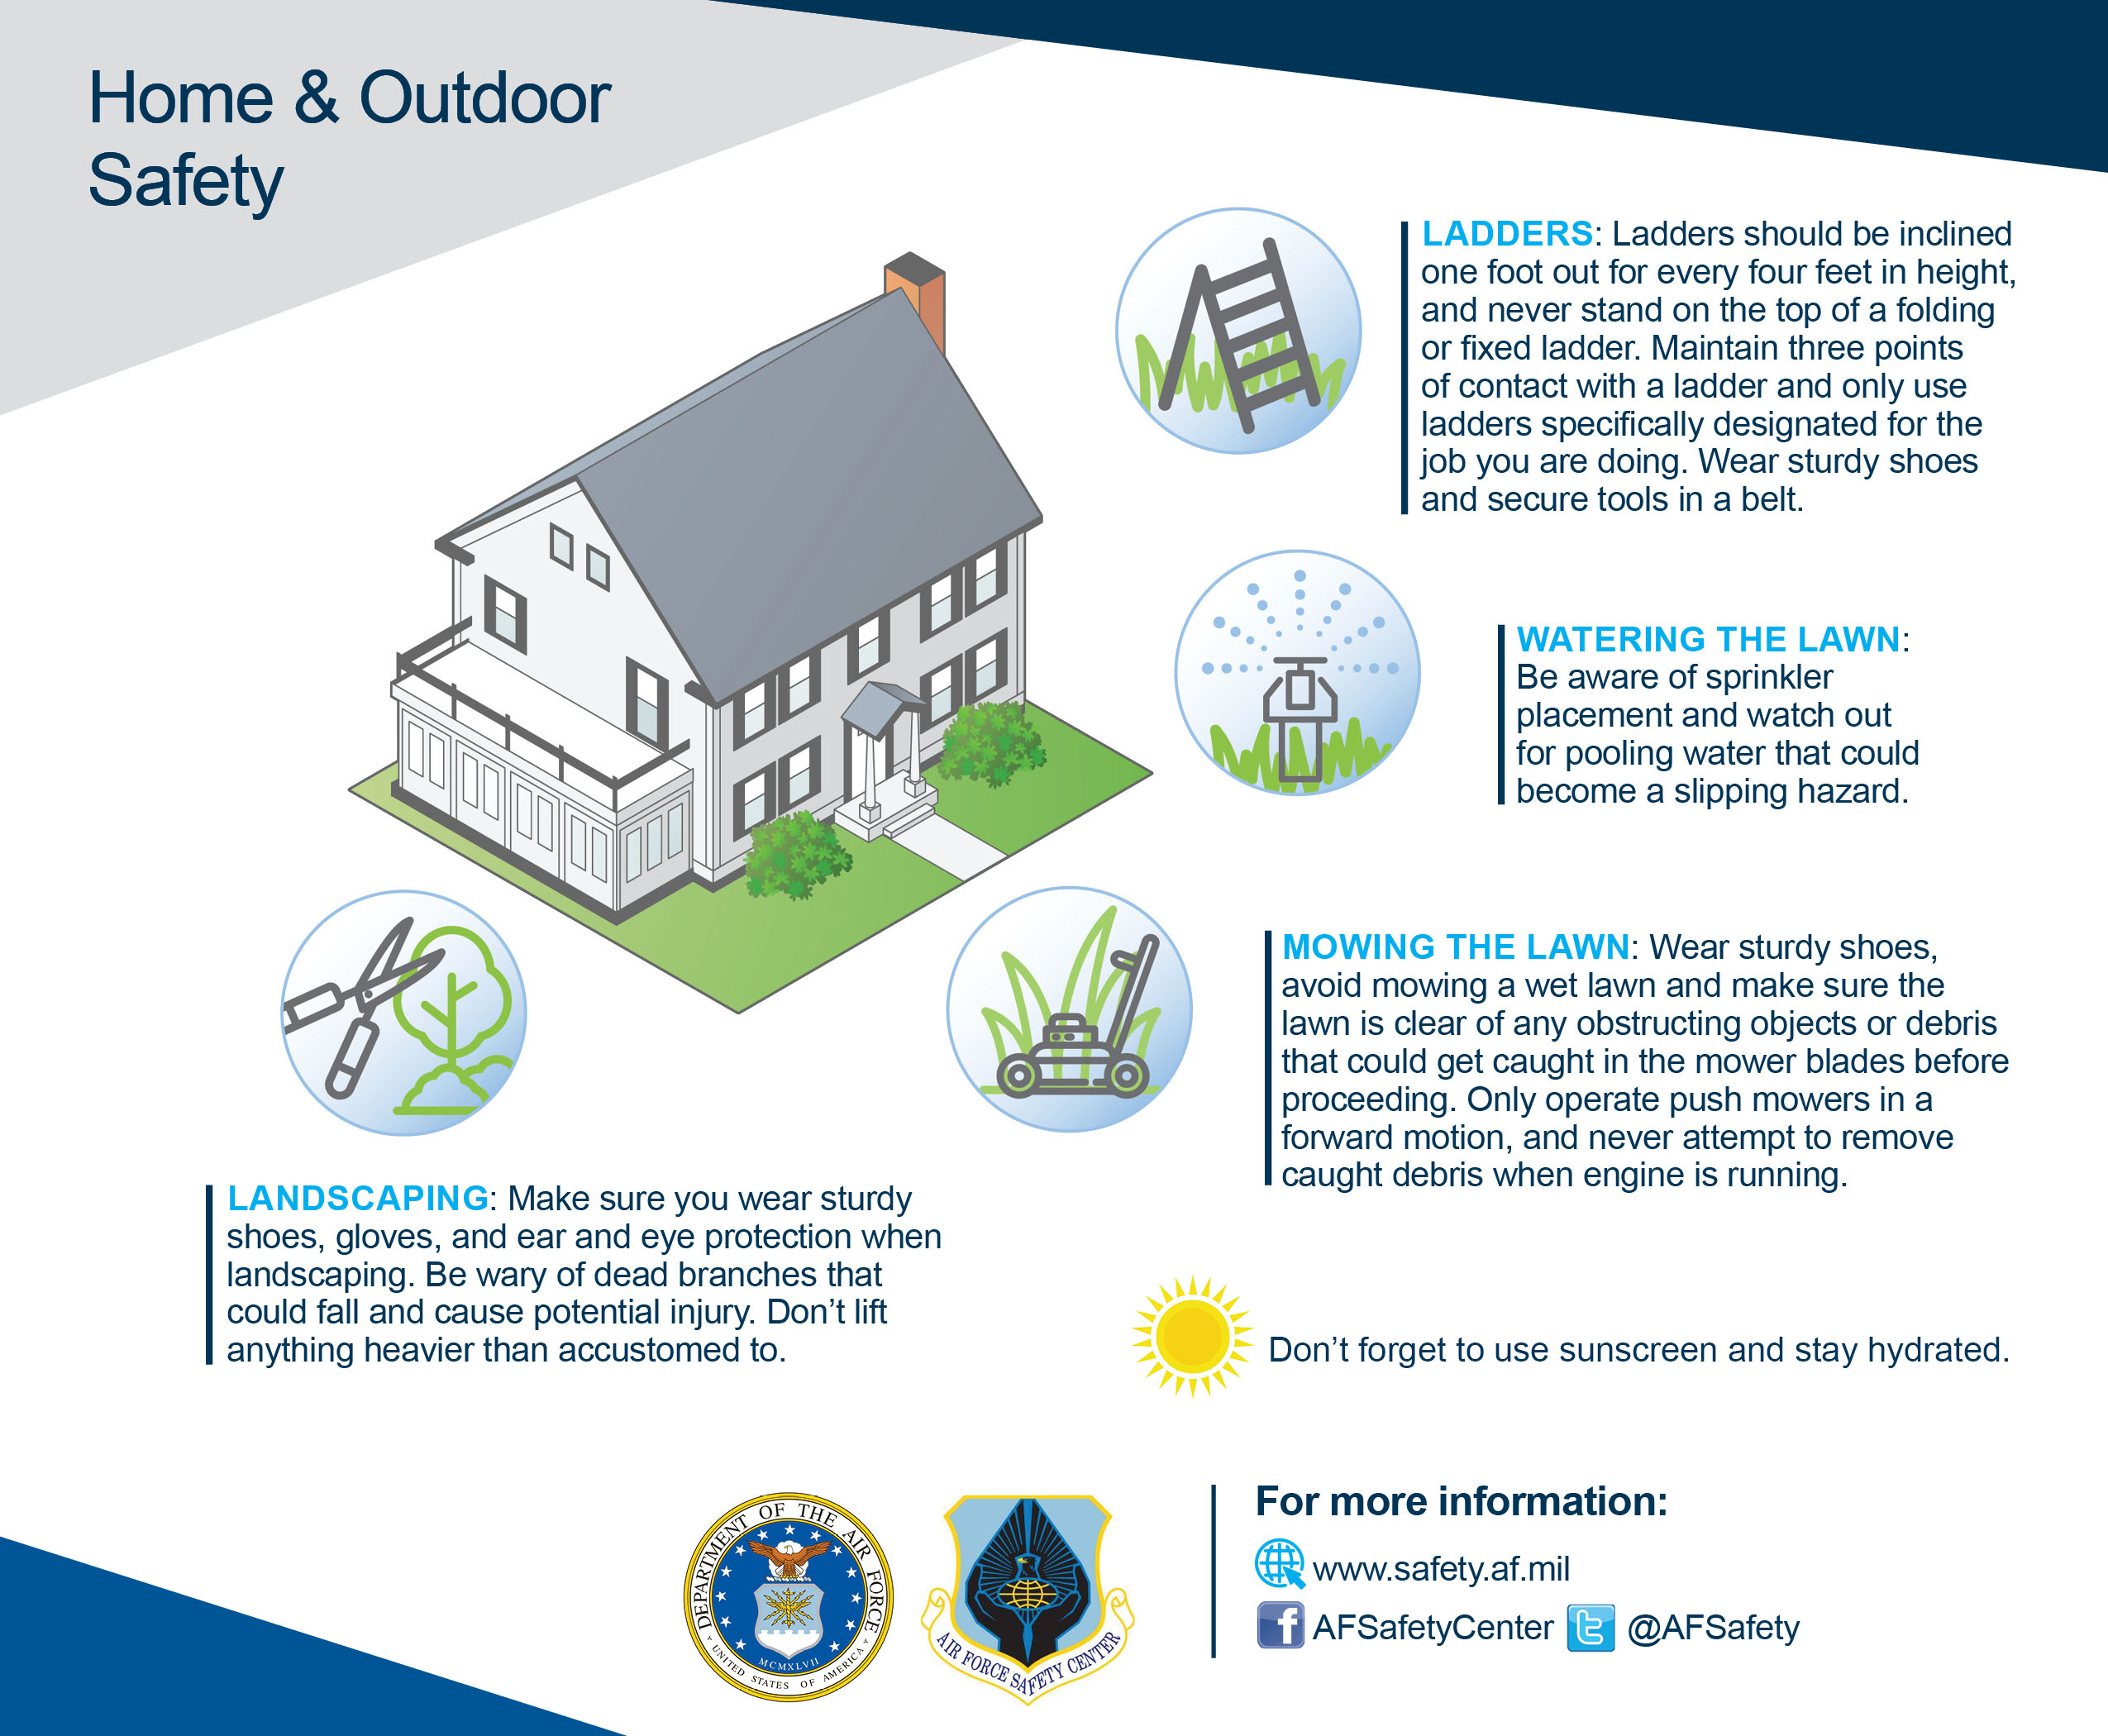 Home and outdoor safety infographic